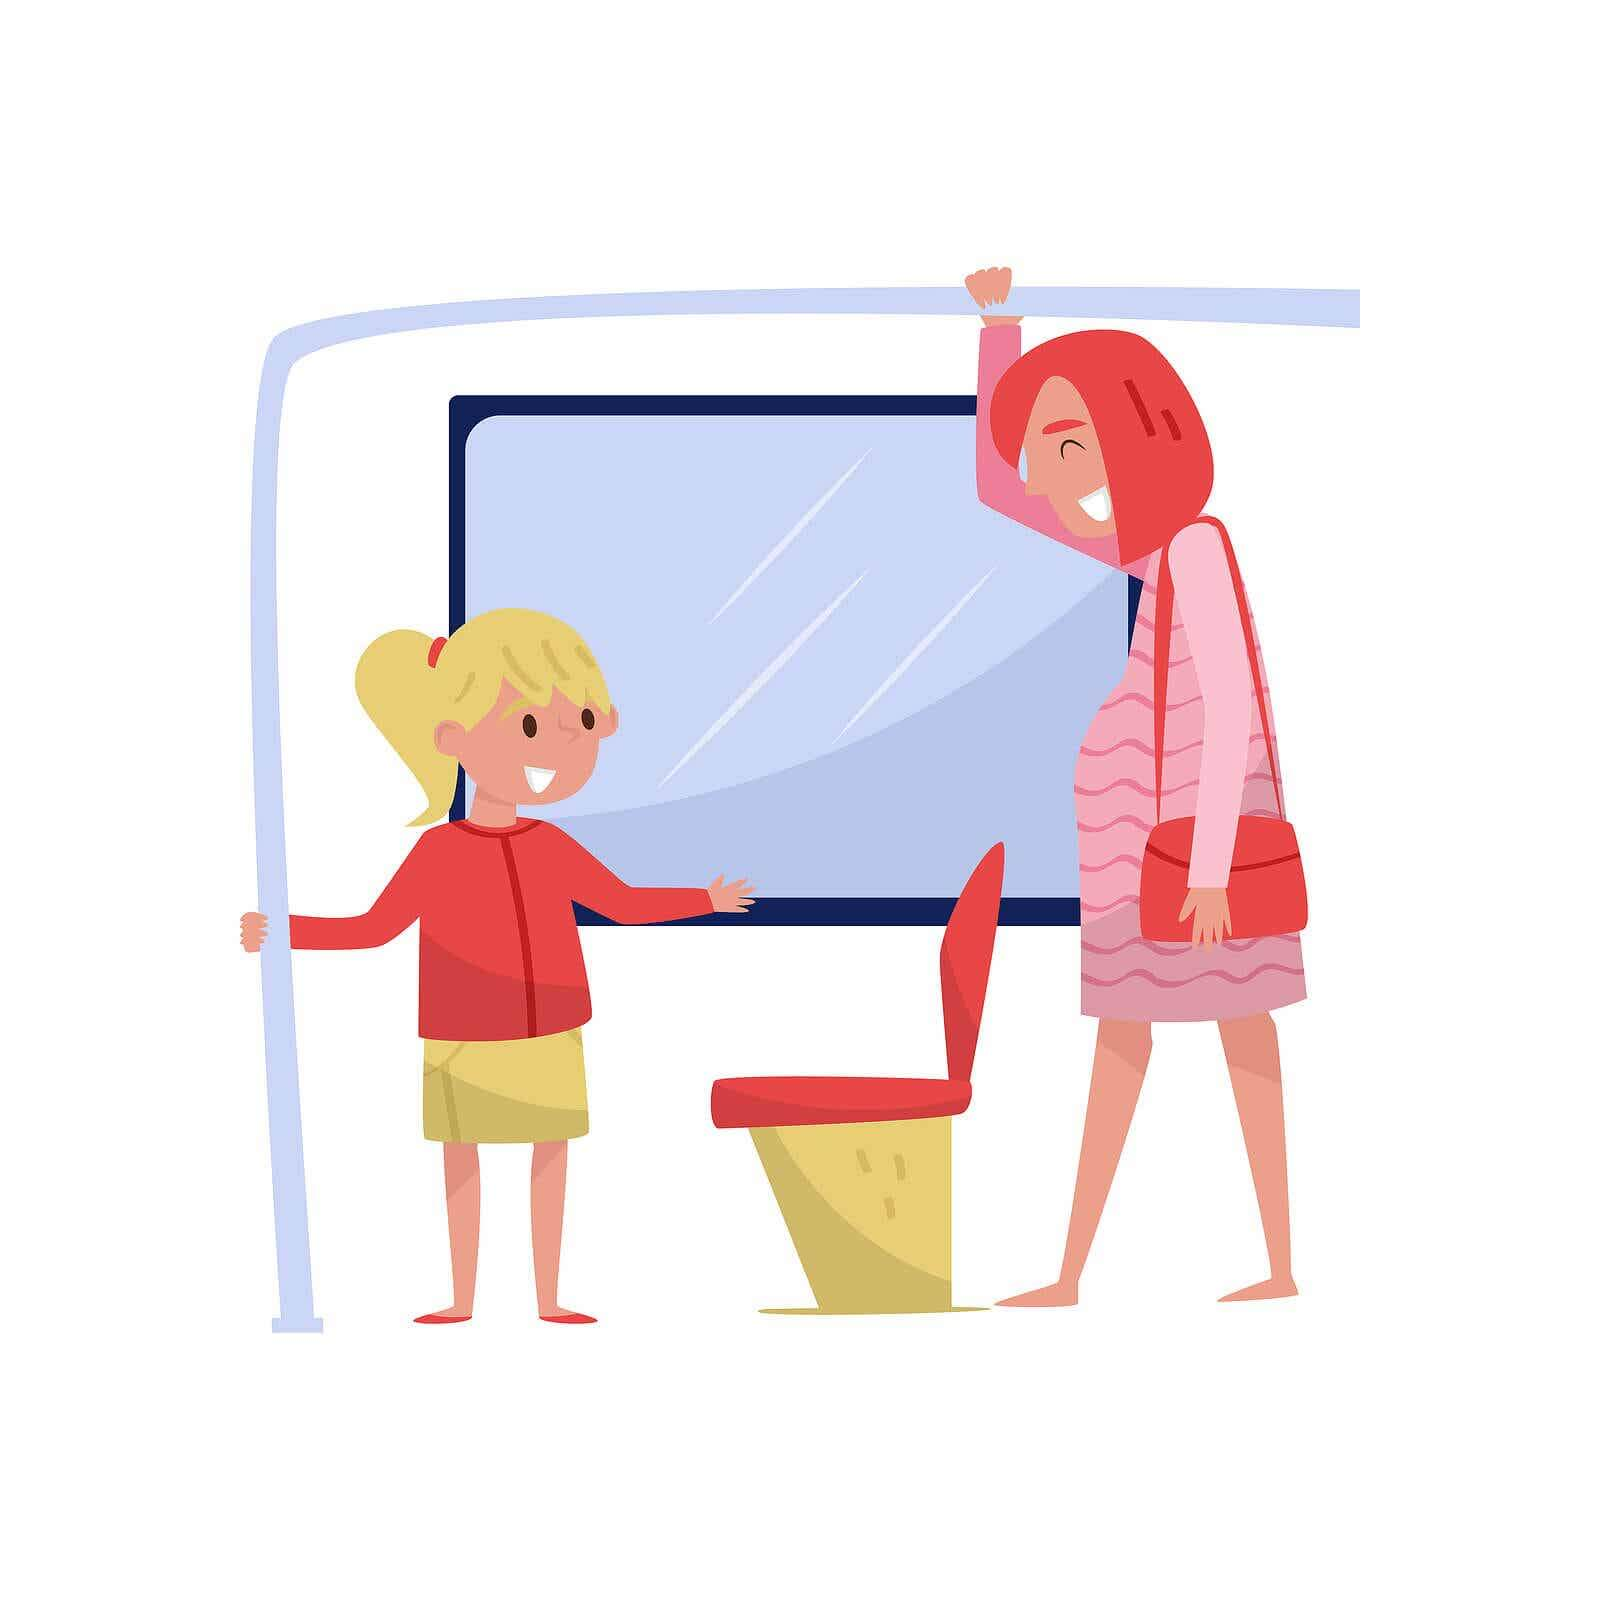 A cartoon image of a small girl giving her seat to a pregnant woman on the bus.